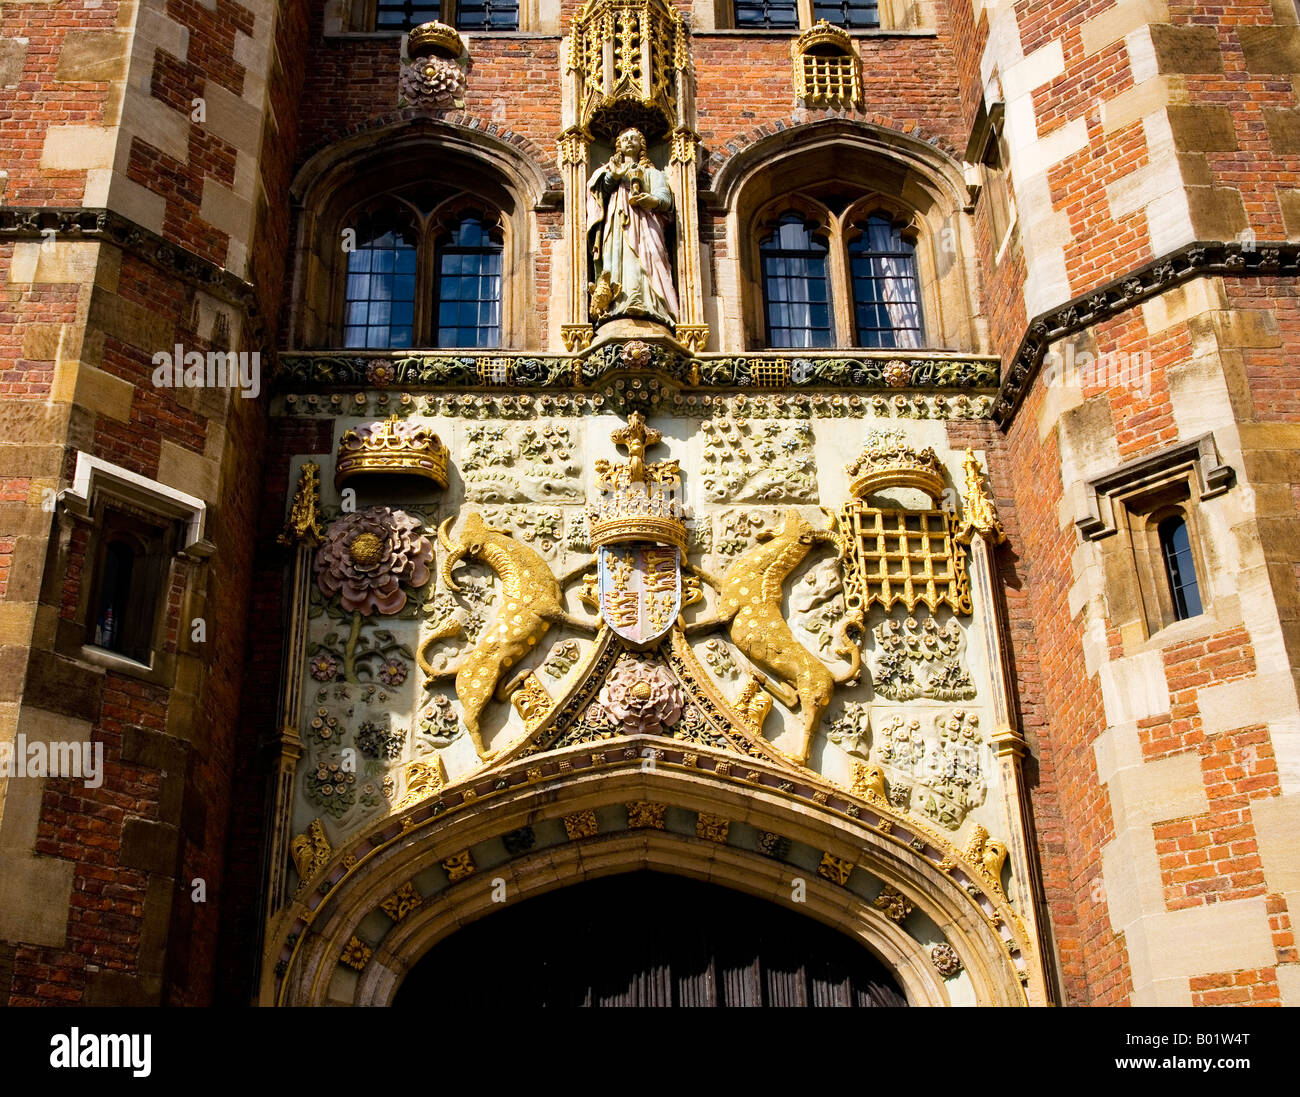 The Front Gate, St.John's College, Cambridge. The carving is of the coat of arms of the Foundress, Lady Margaret Stock Photo